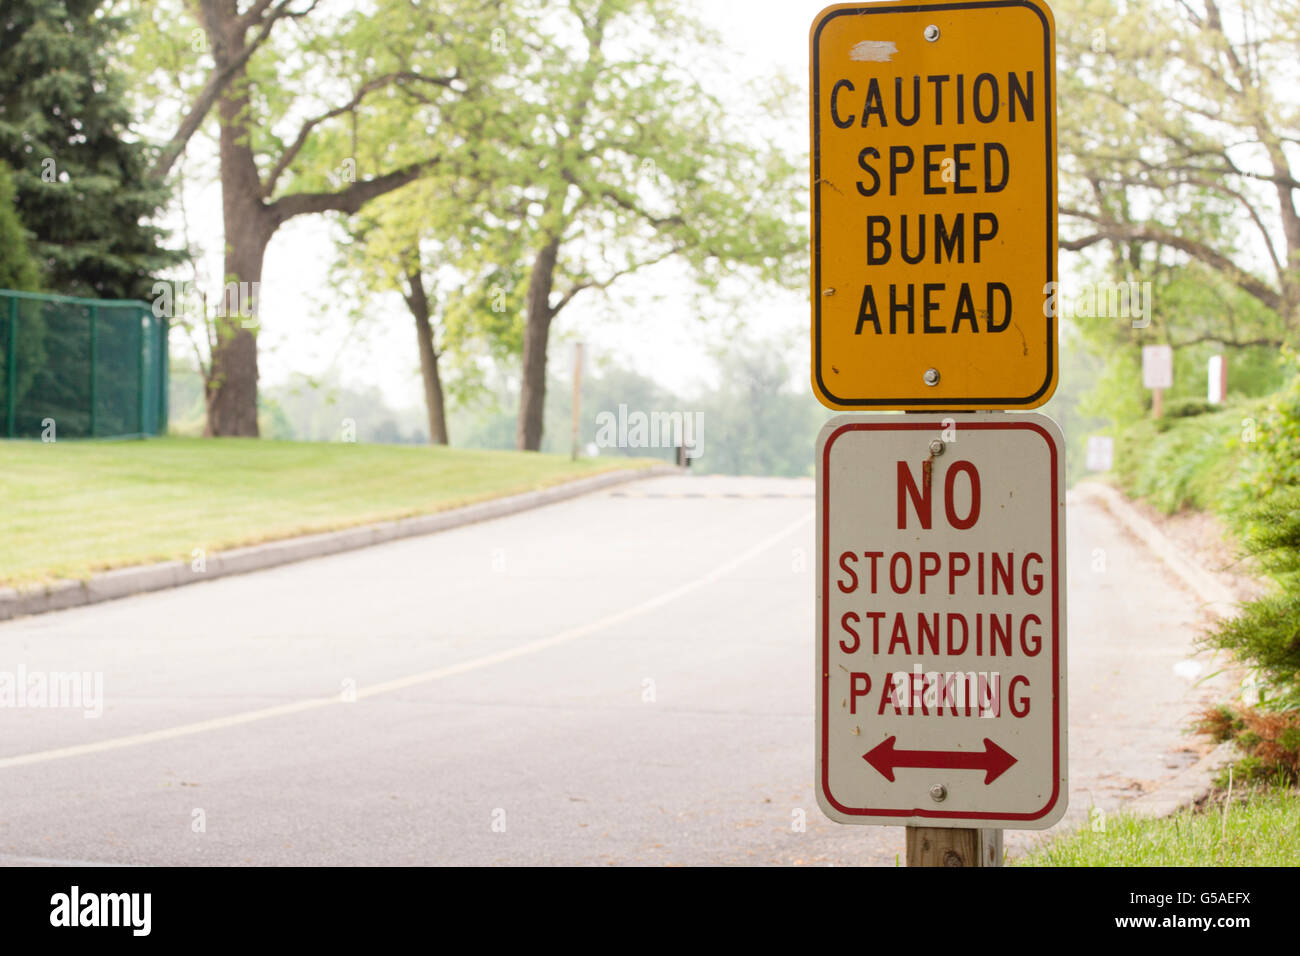 Speed Bump Ahead, No Stopping, No Standing, No Parking Sign - Stock Image